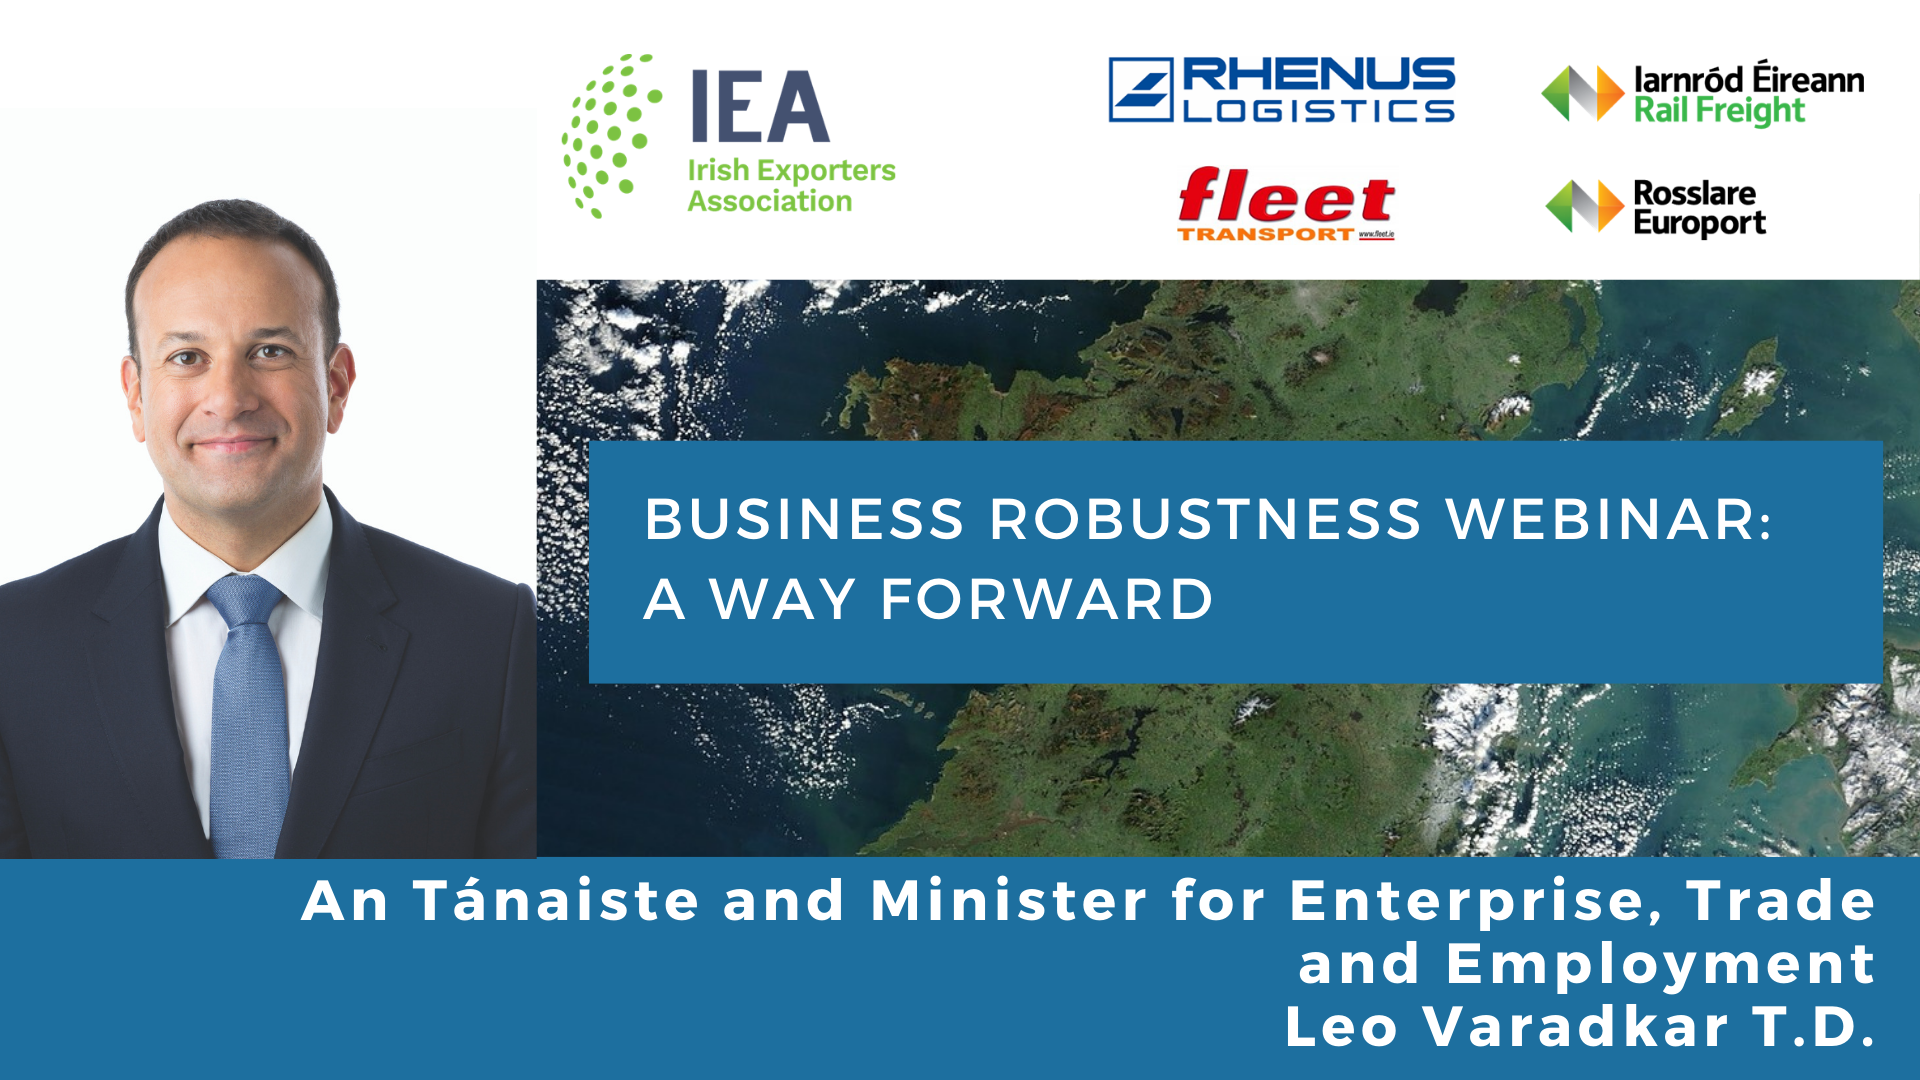 An Tánaiste and Minister for Enterprise, Trade and Employment Mr Leo Varadkar TD addresses Irish Exporters Association webinar series on charting a way forward for exporters